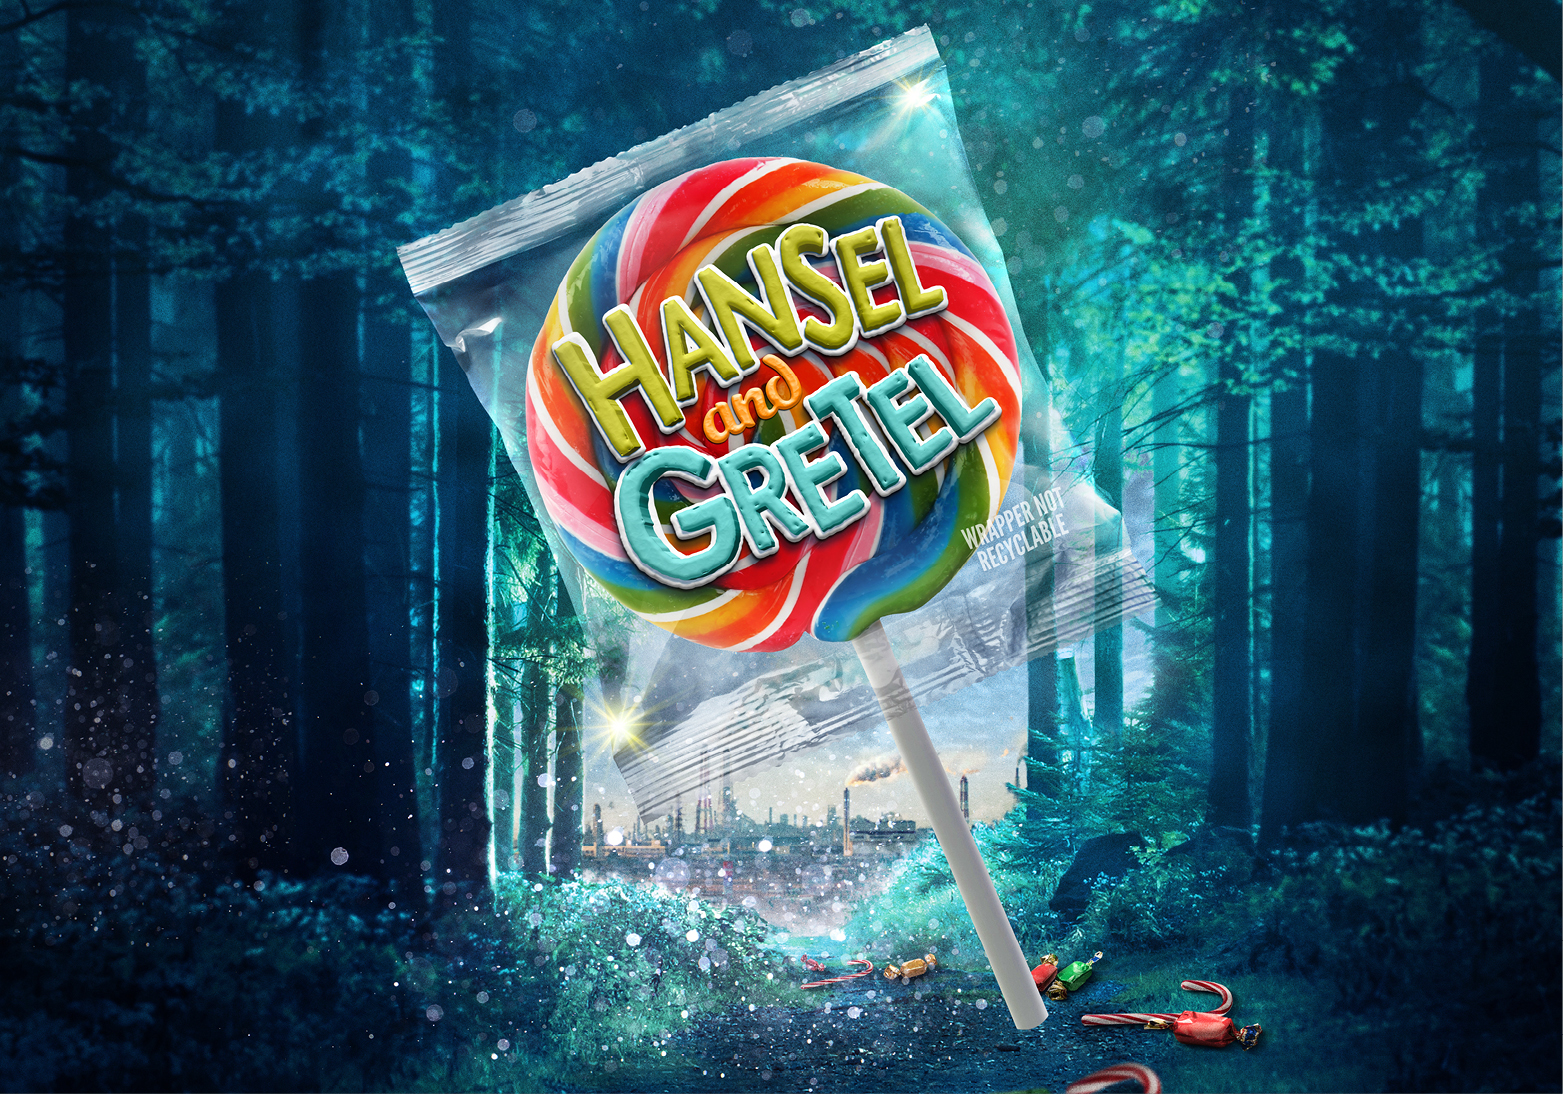 HANSEL AND GRETEL, 2019/20